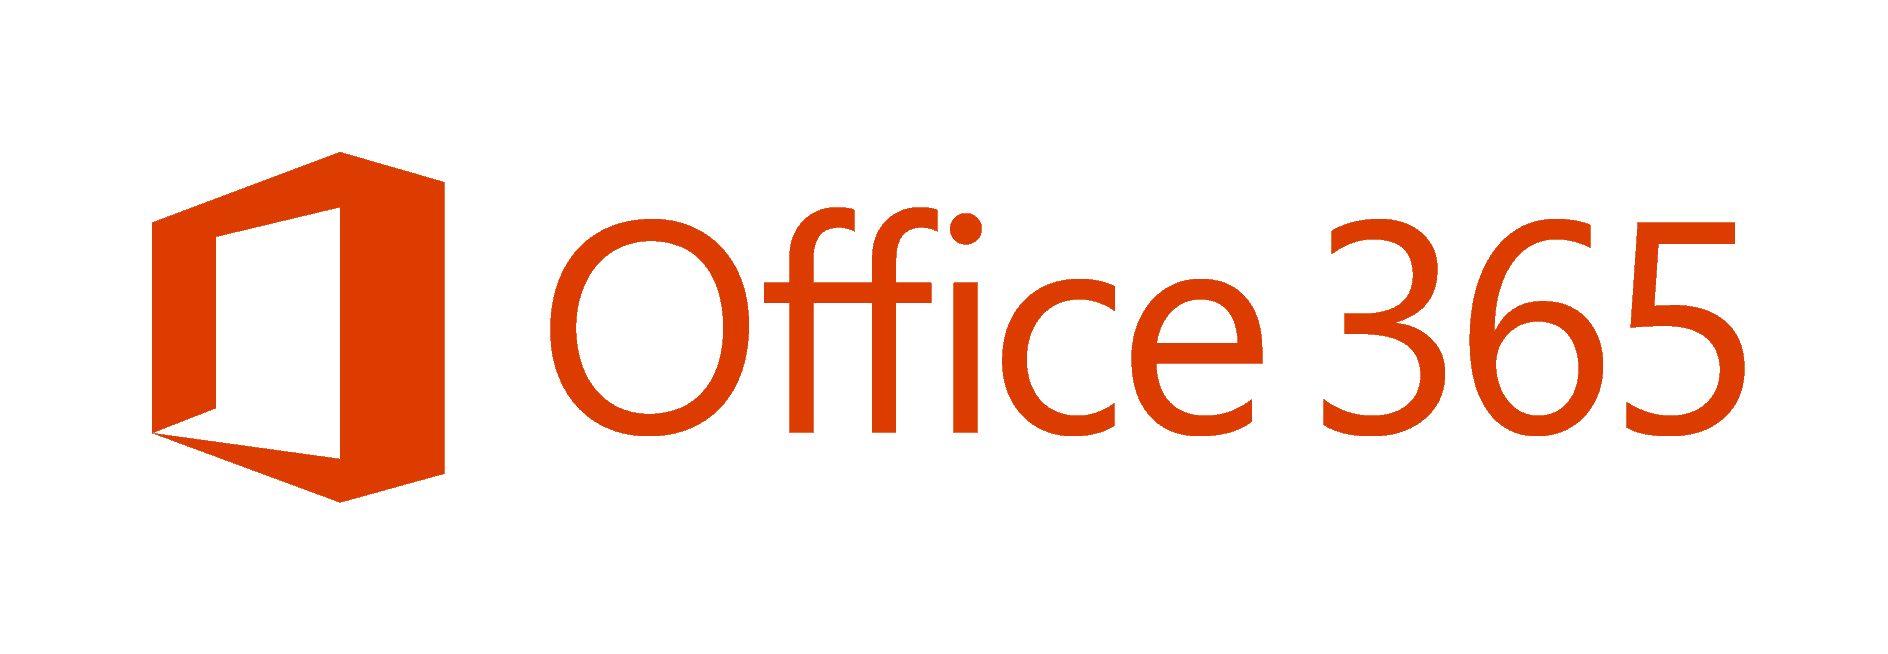 Migrate your business to Office 365